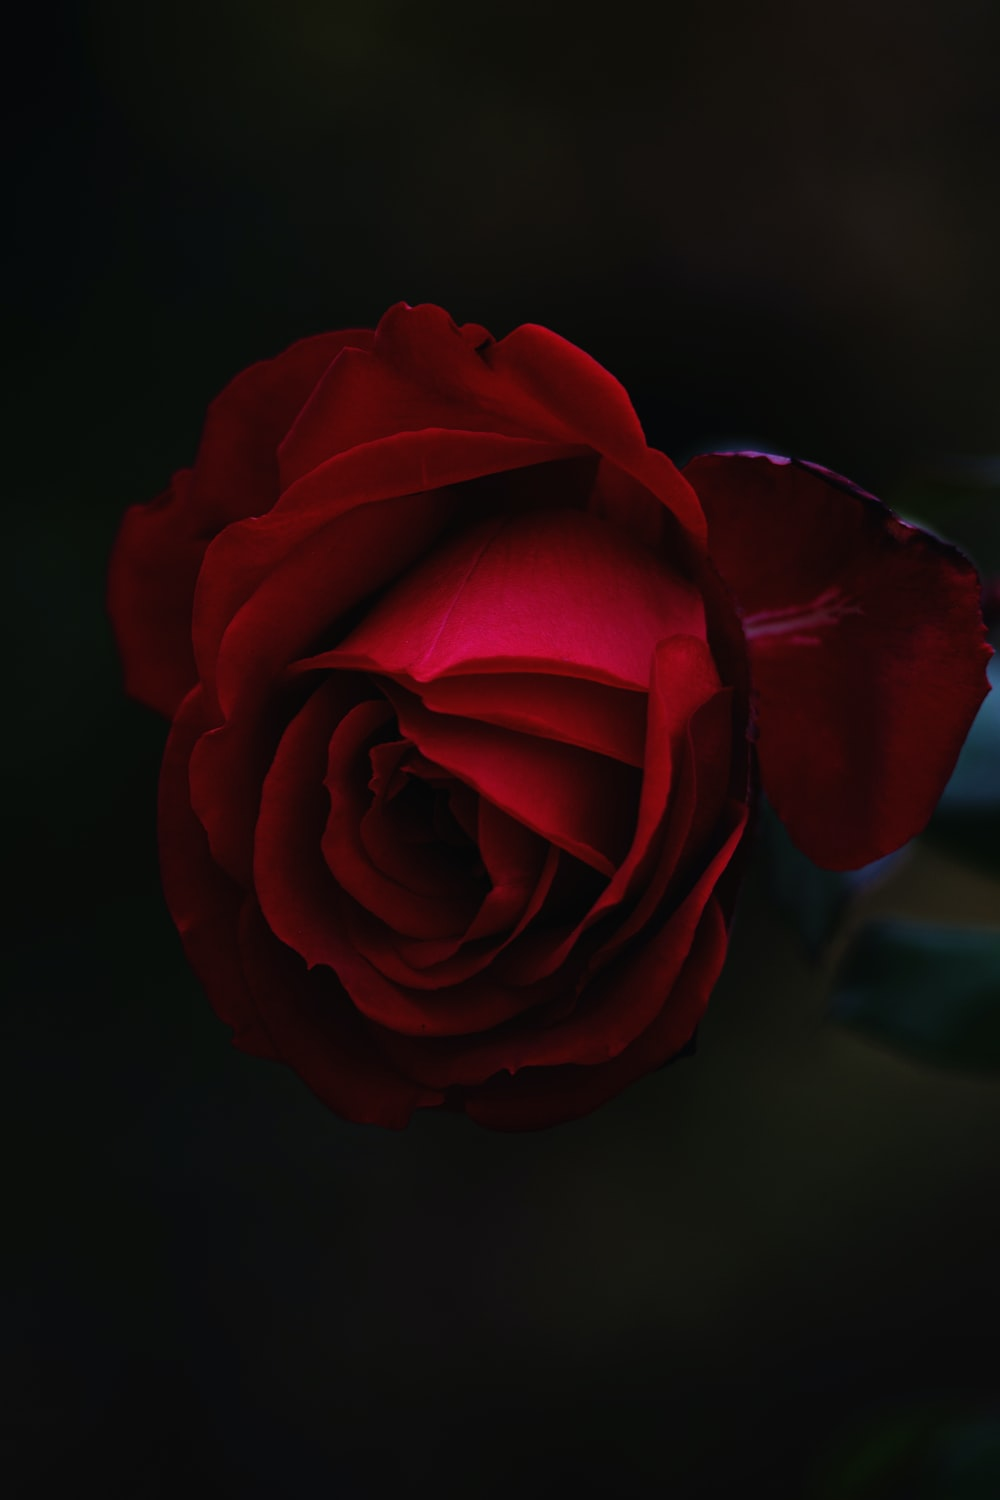 Stunning Red Rose Photo By Roksolana Zasiadko Cieloadentro On